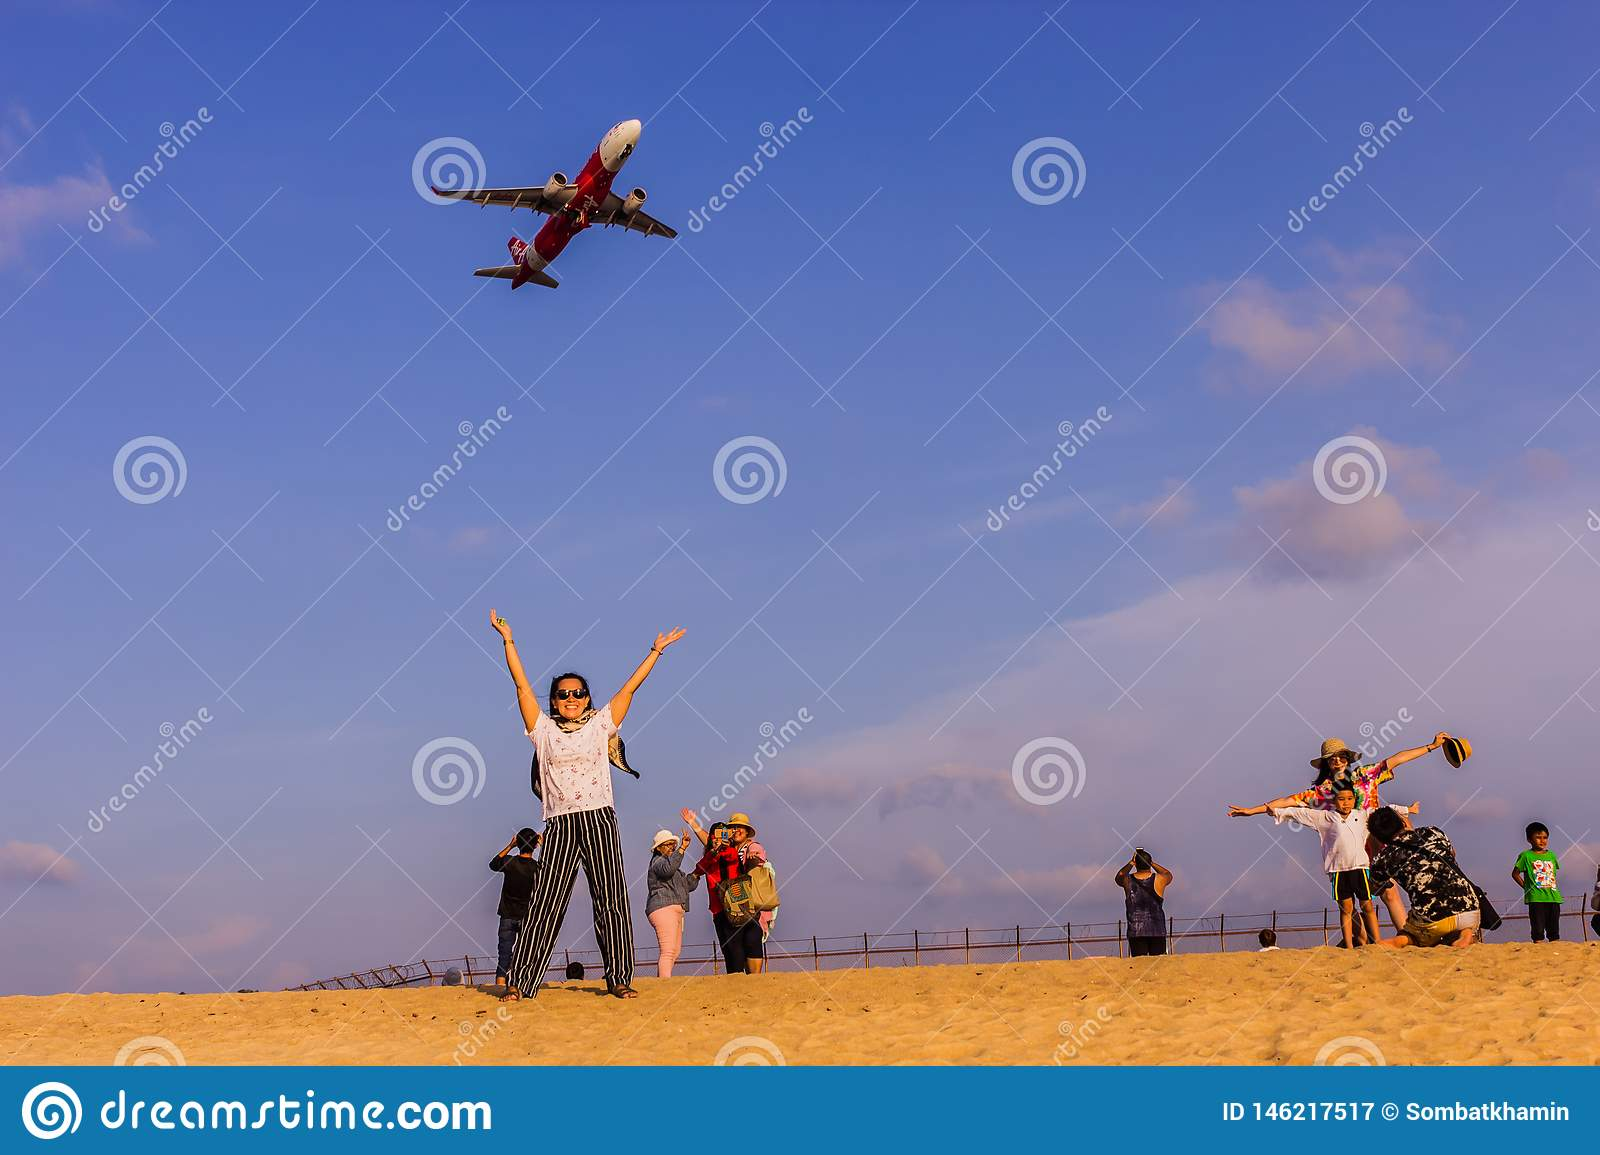 Phuket, Thailand - April 14, 2019: Tourists enjoy taking a picture with the airplane flying over them as the background, at the